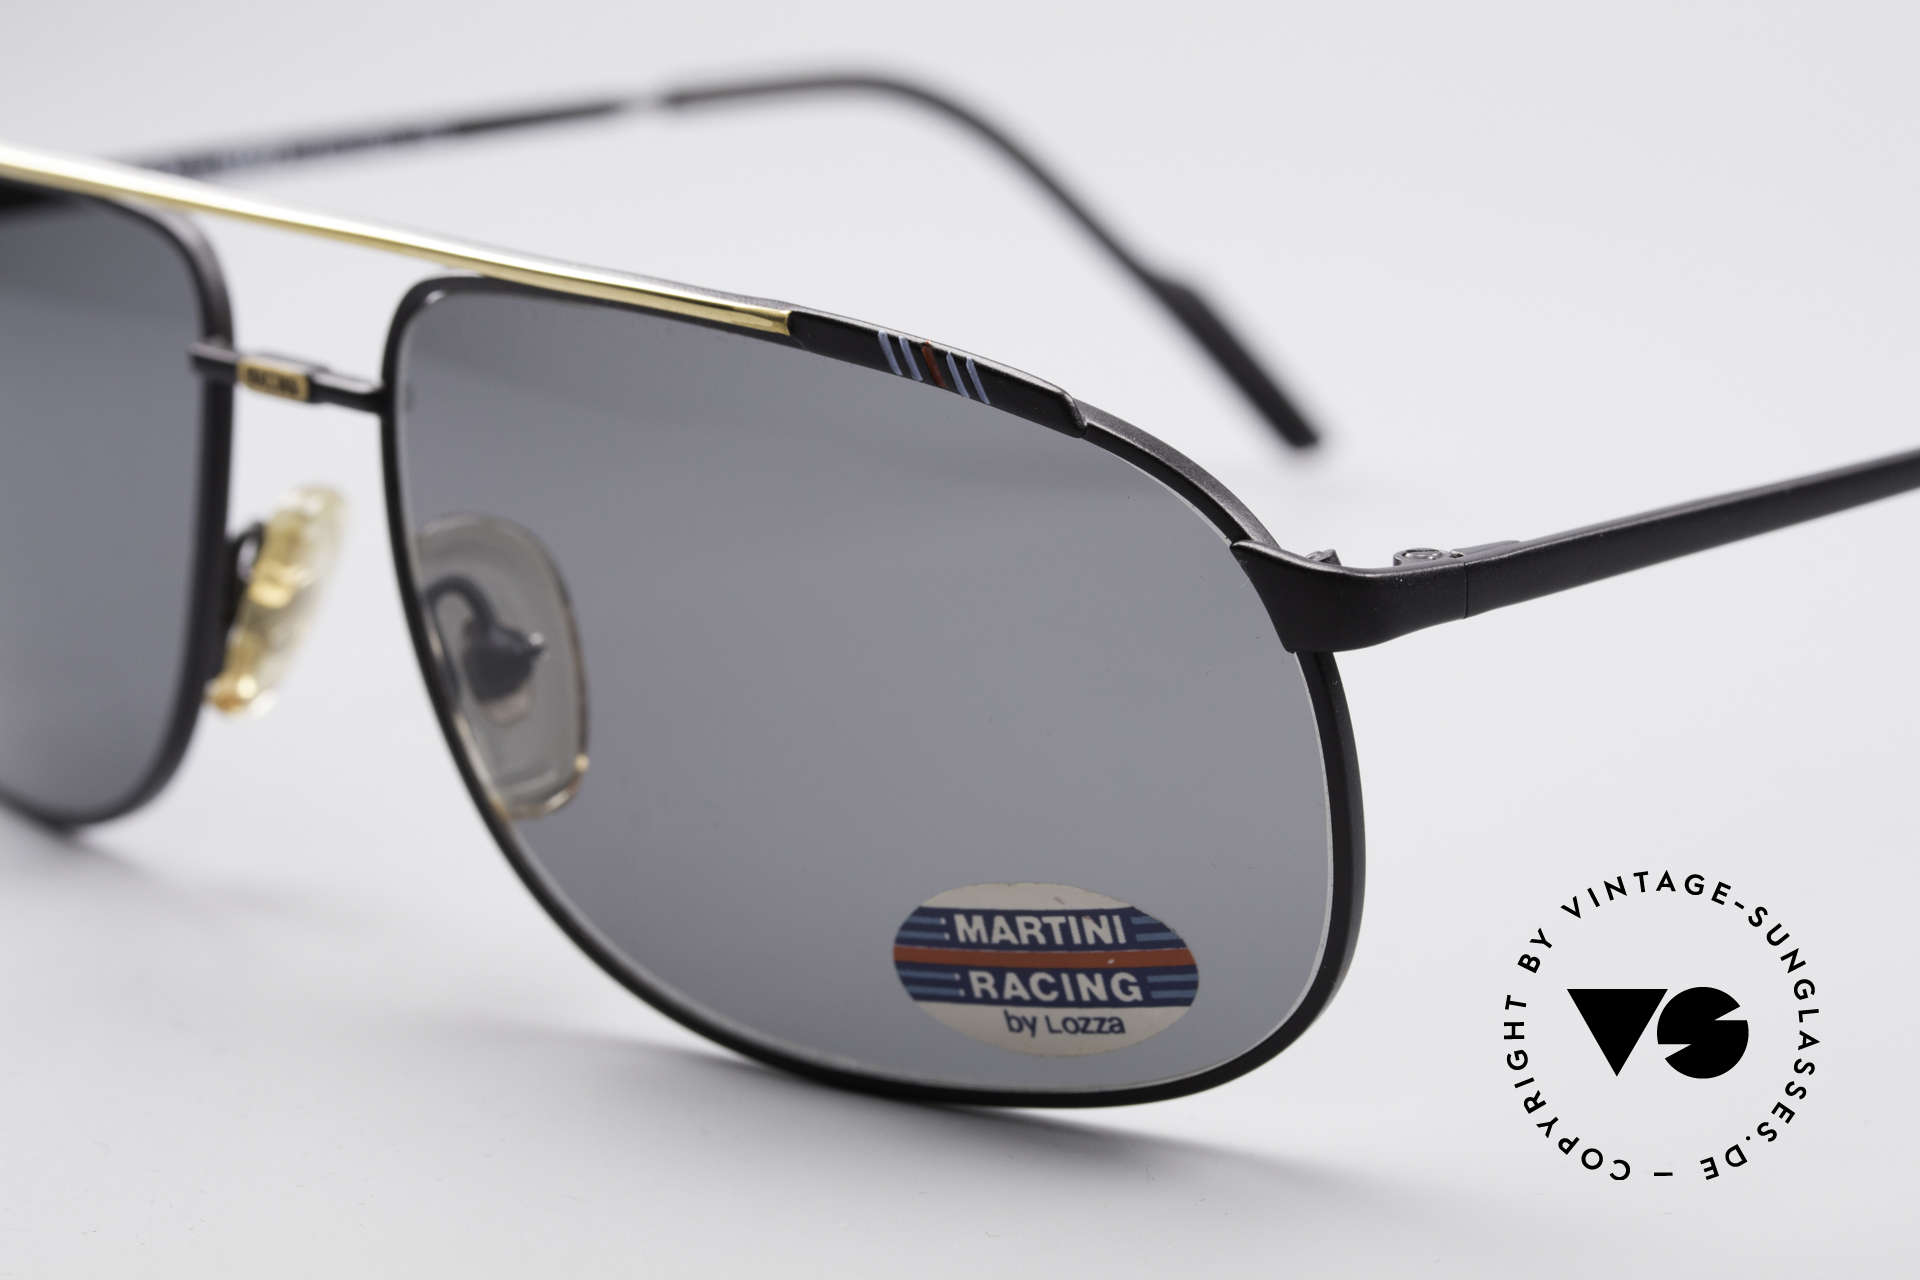 Martini Racing - Tenere Motorsport Sunglasses, the model Tenerè was part of the sunglass collection, Made for Men